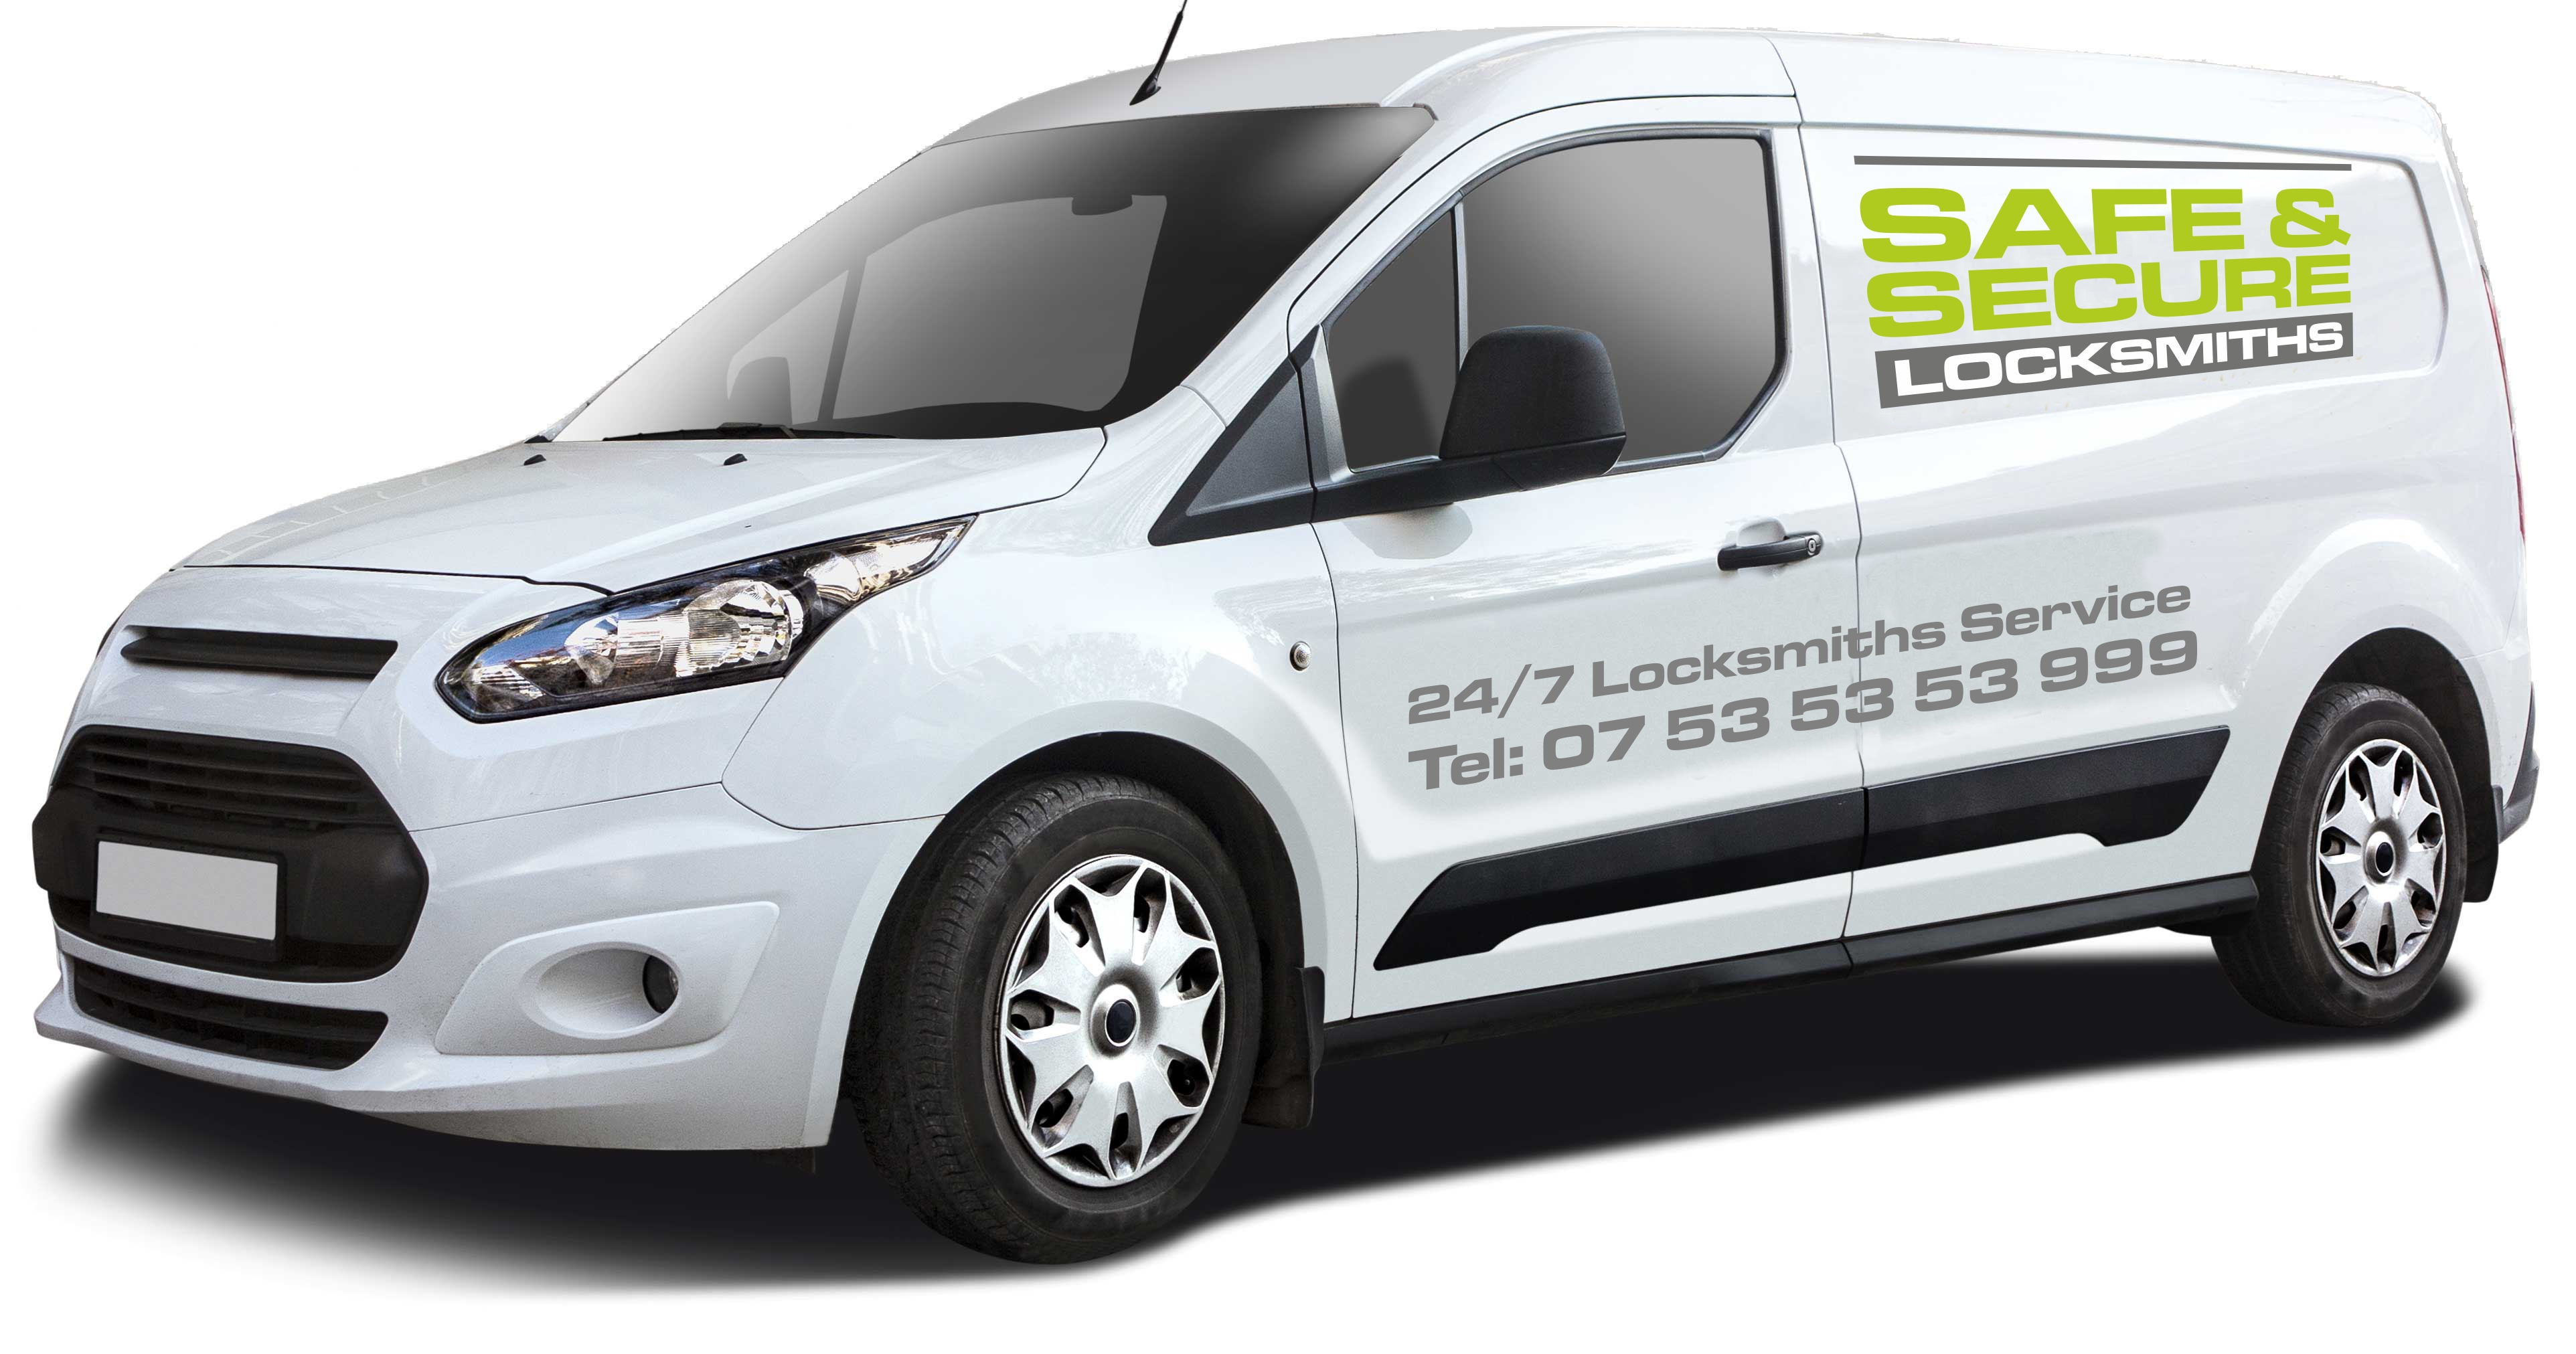 Wakefield-emergency-locksmiths